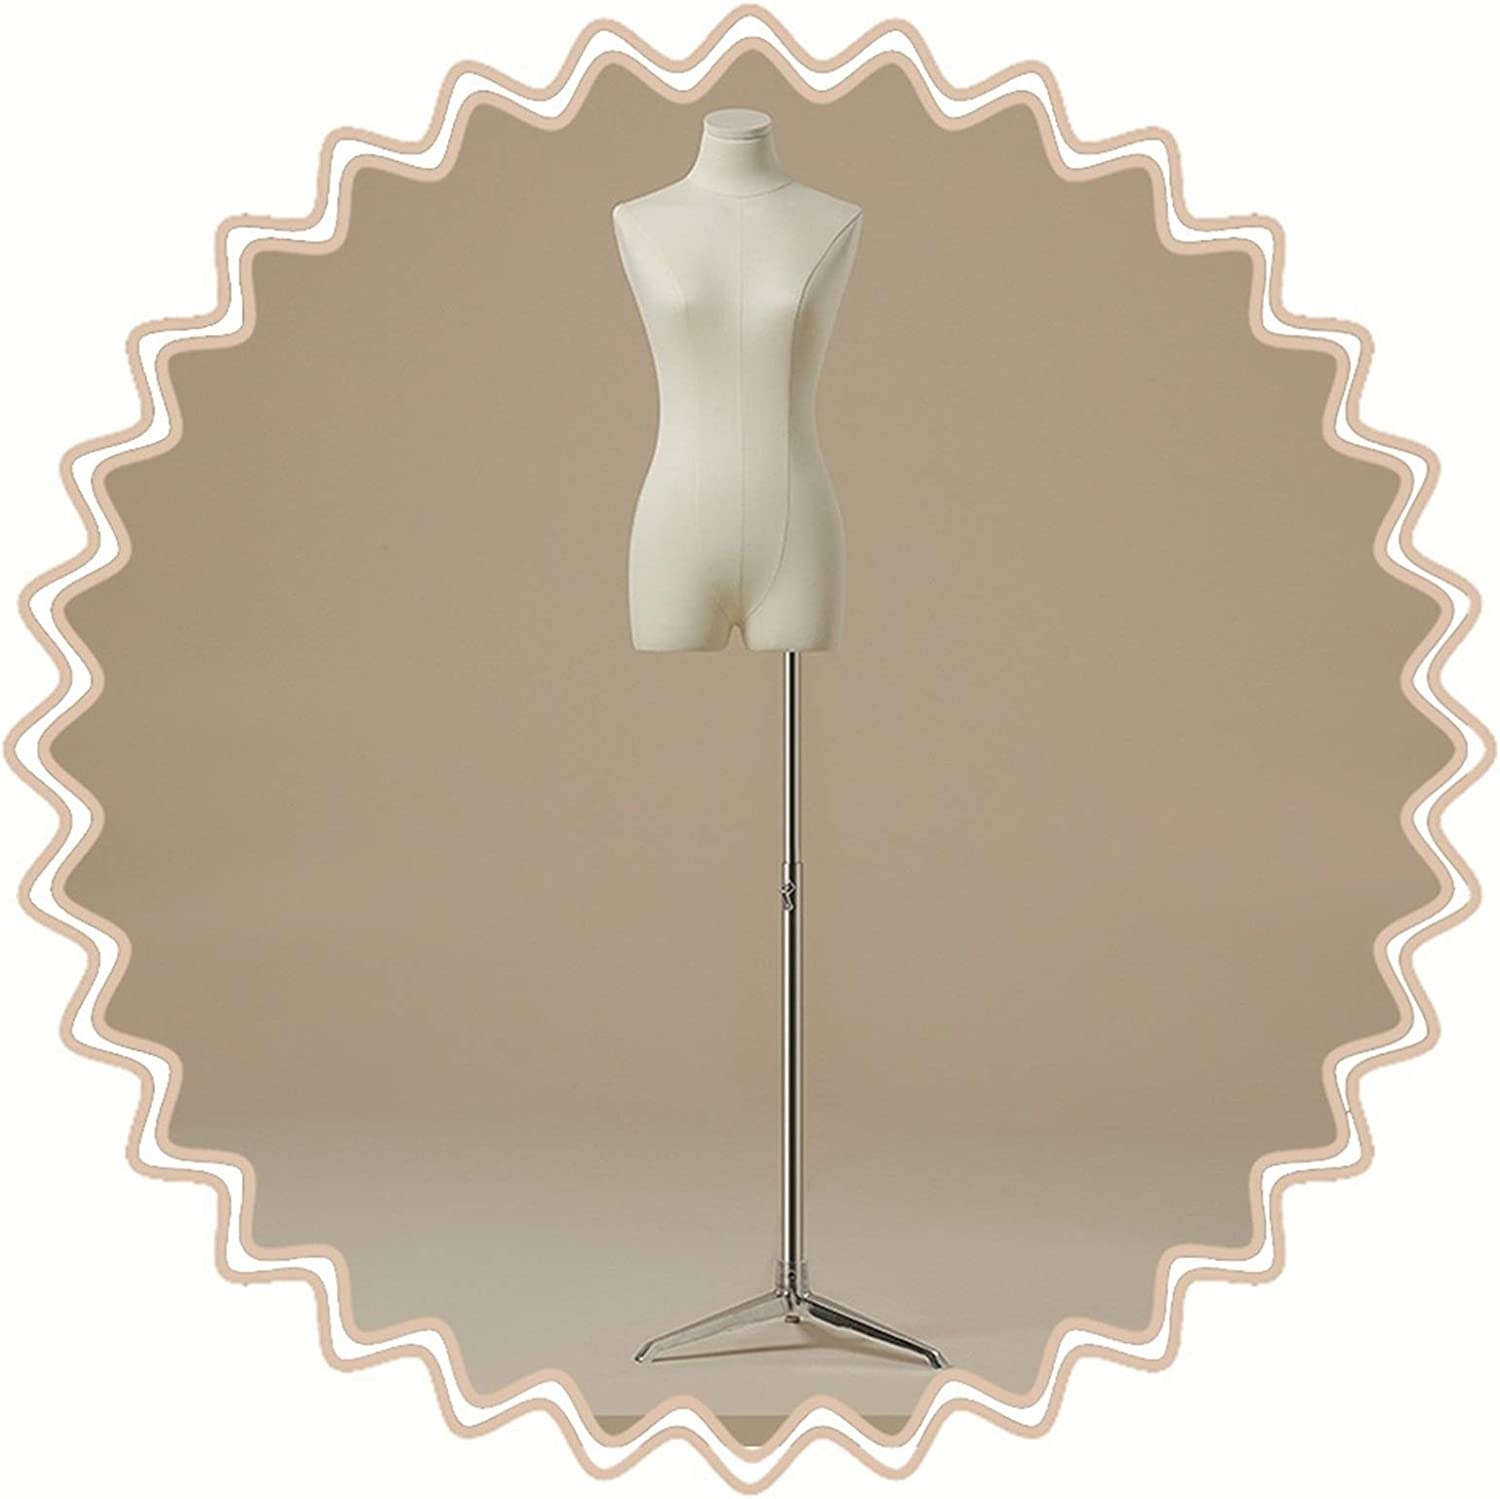 KKCF Mannequins Torso Height Adjustable Women's Clothing Our shop OFFers Sales of SALE items from new works the best service W Shop